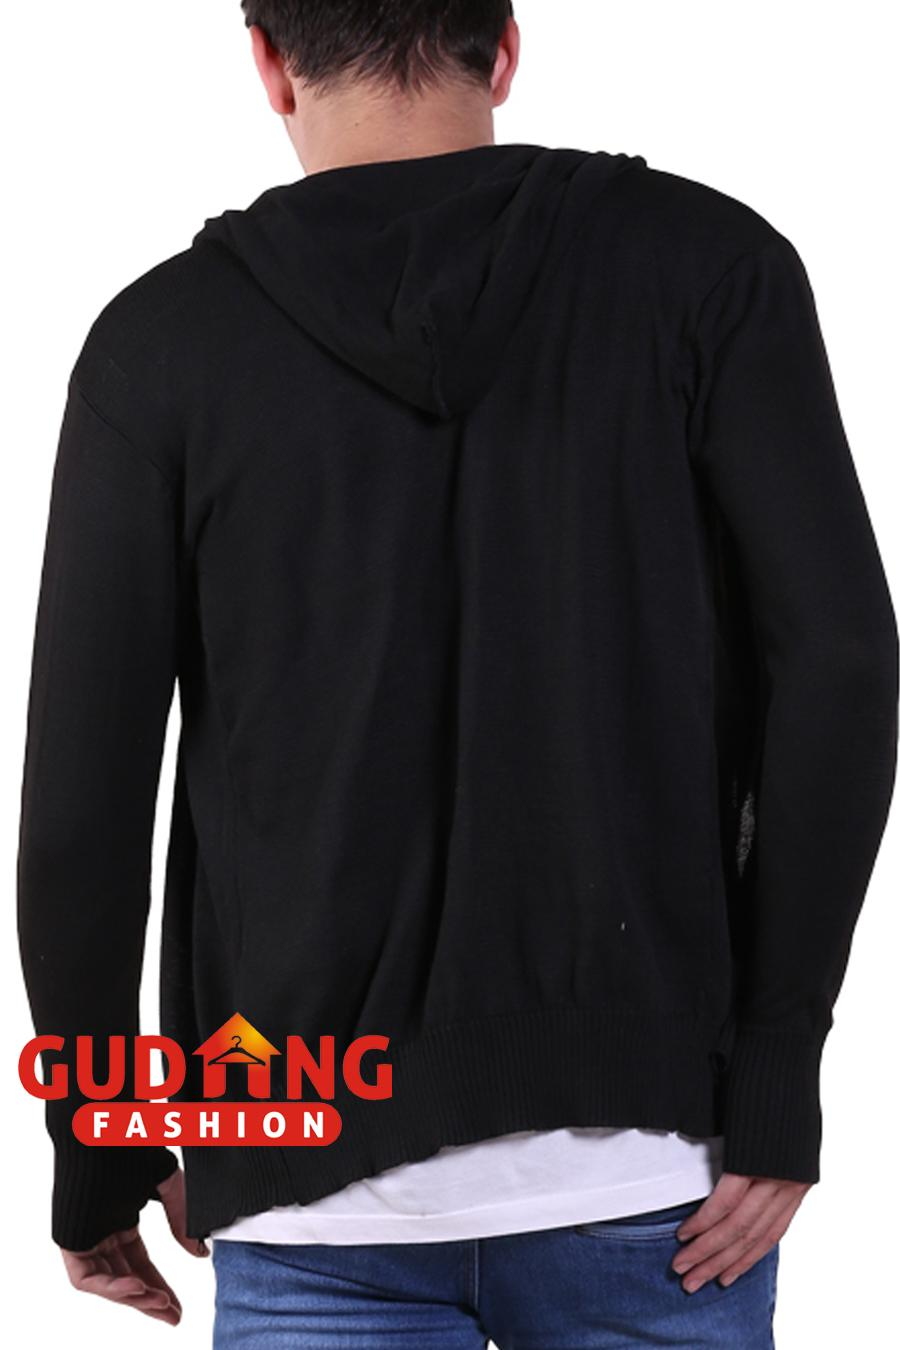 Gudang Fashion - Sweater Knit Hoodie Ariel Noah - Hitam